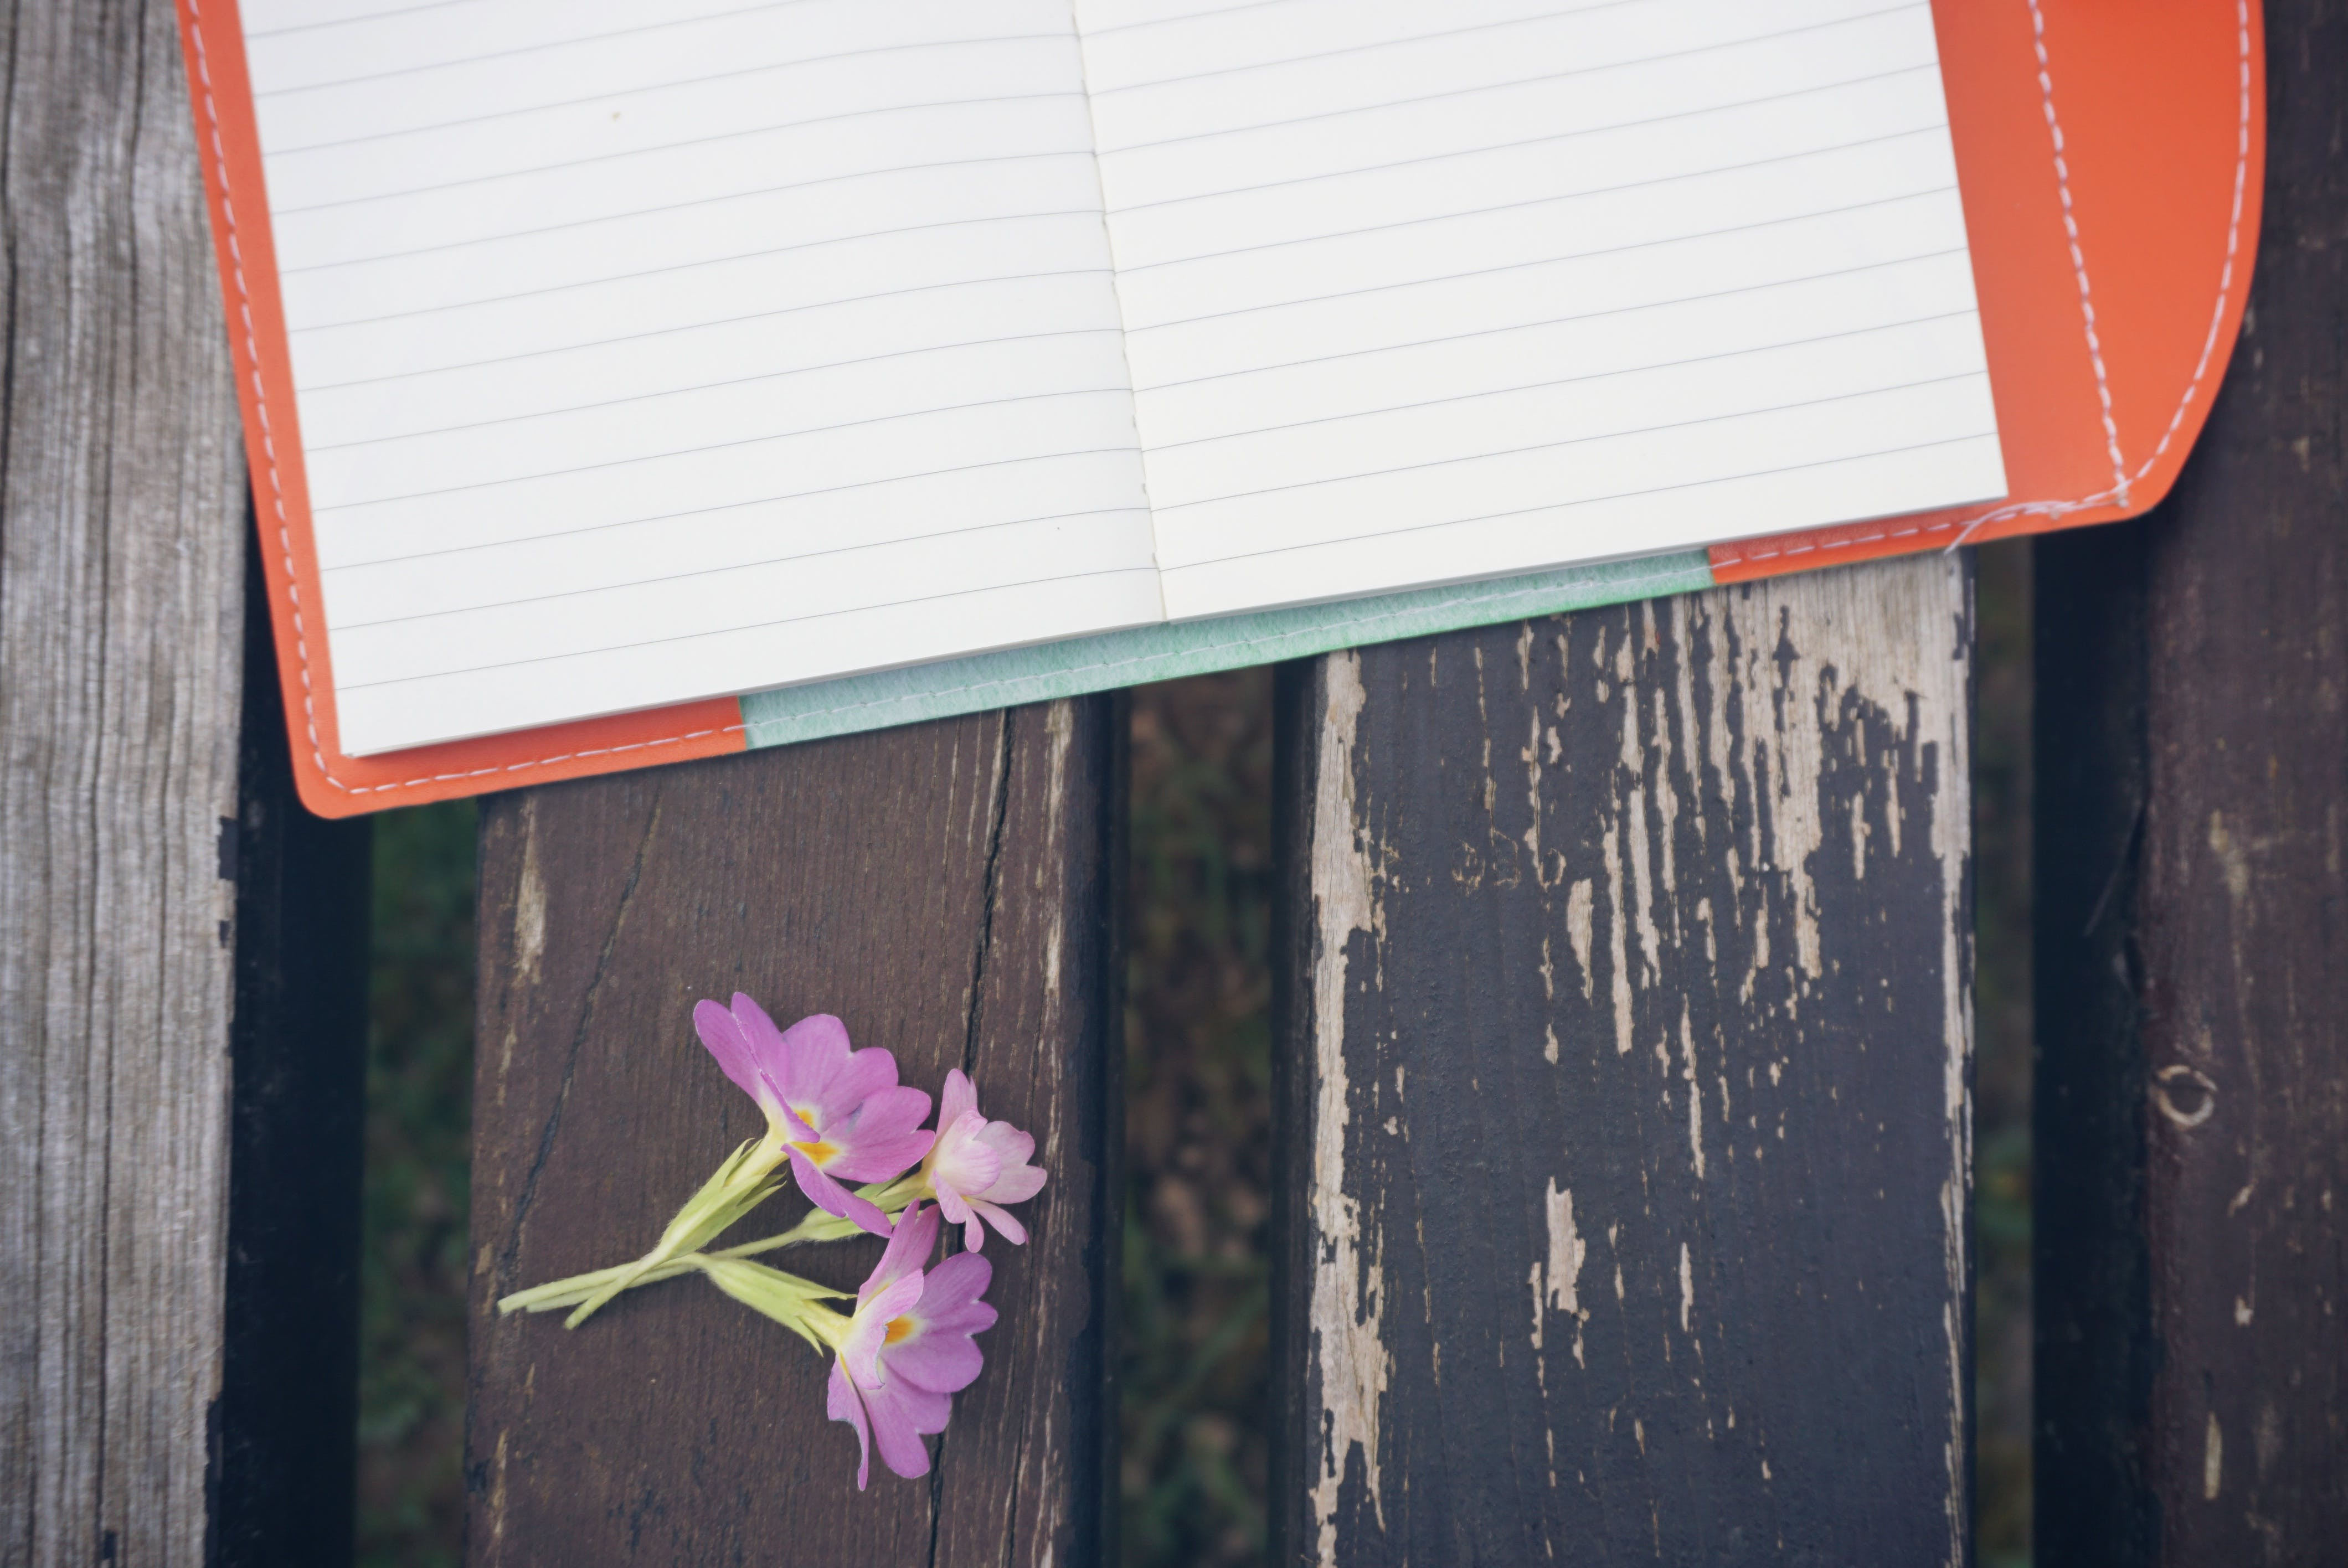 Purple Petaled Flower Beside White Line Paper on Black Wooden Desk